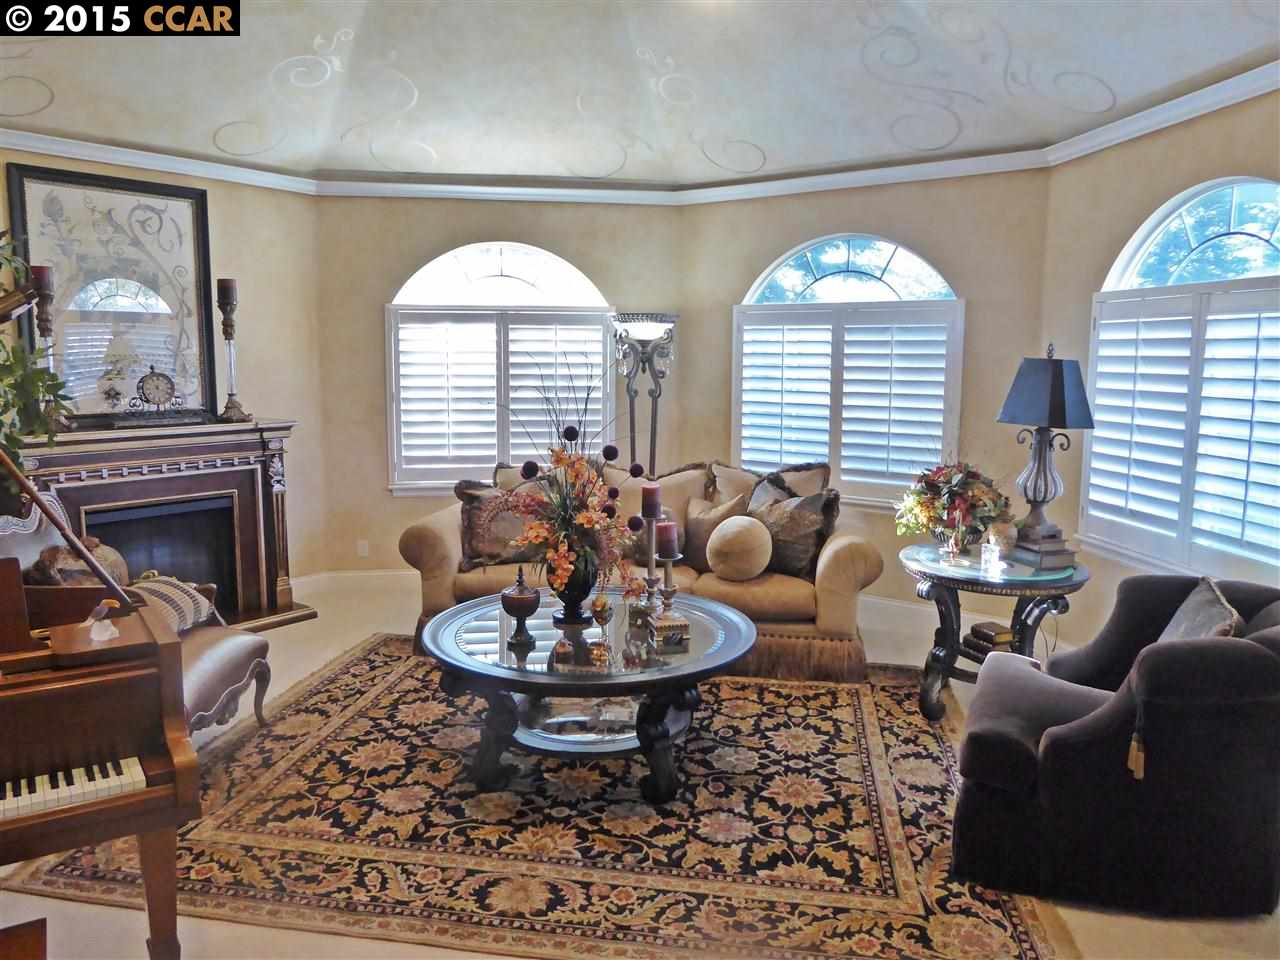 Additional photo for property listing at 55 SERENA Lane  Danville, California 94526 United States